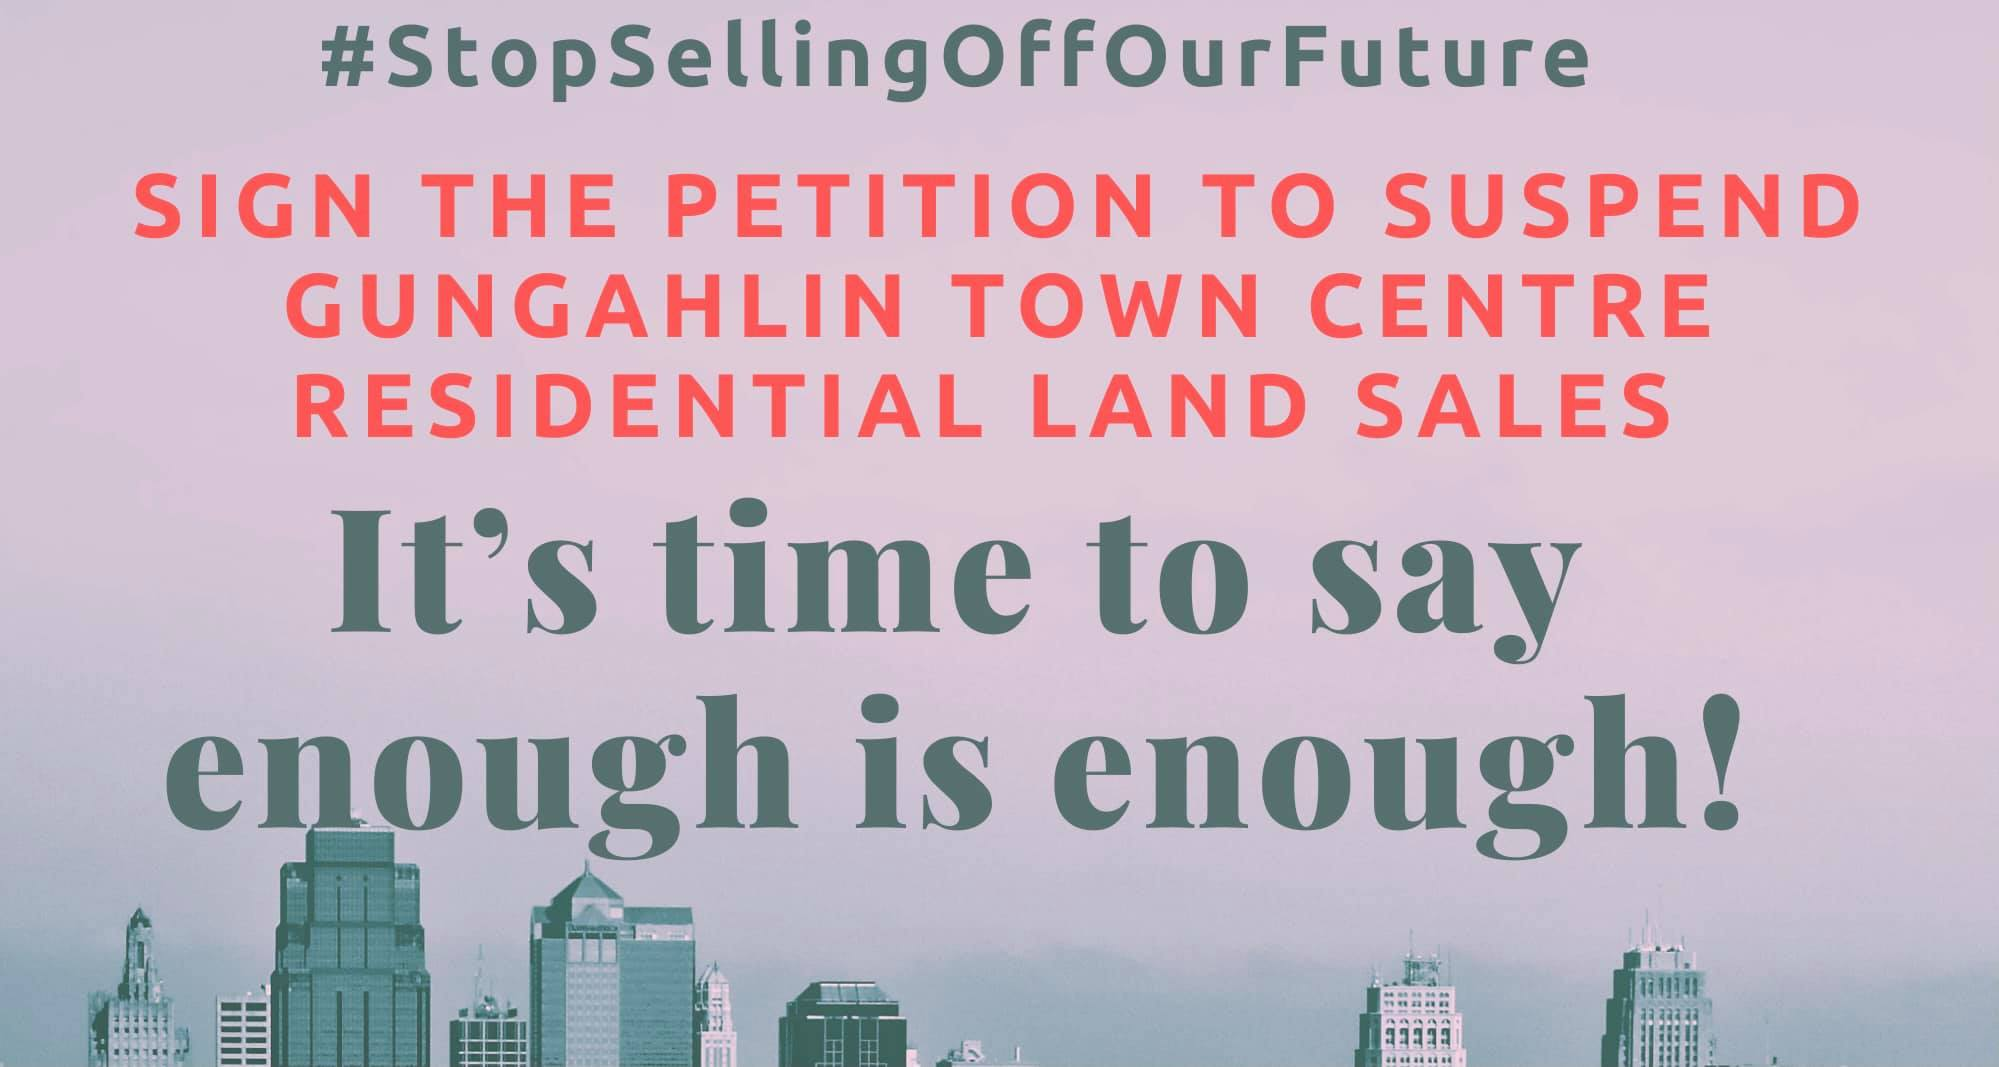 Sign The Petition to Suspend Land Sales in the Gungahlin Town Centre